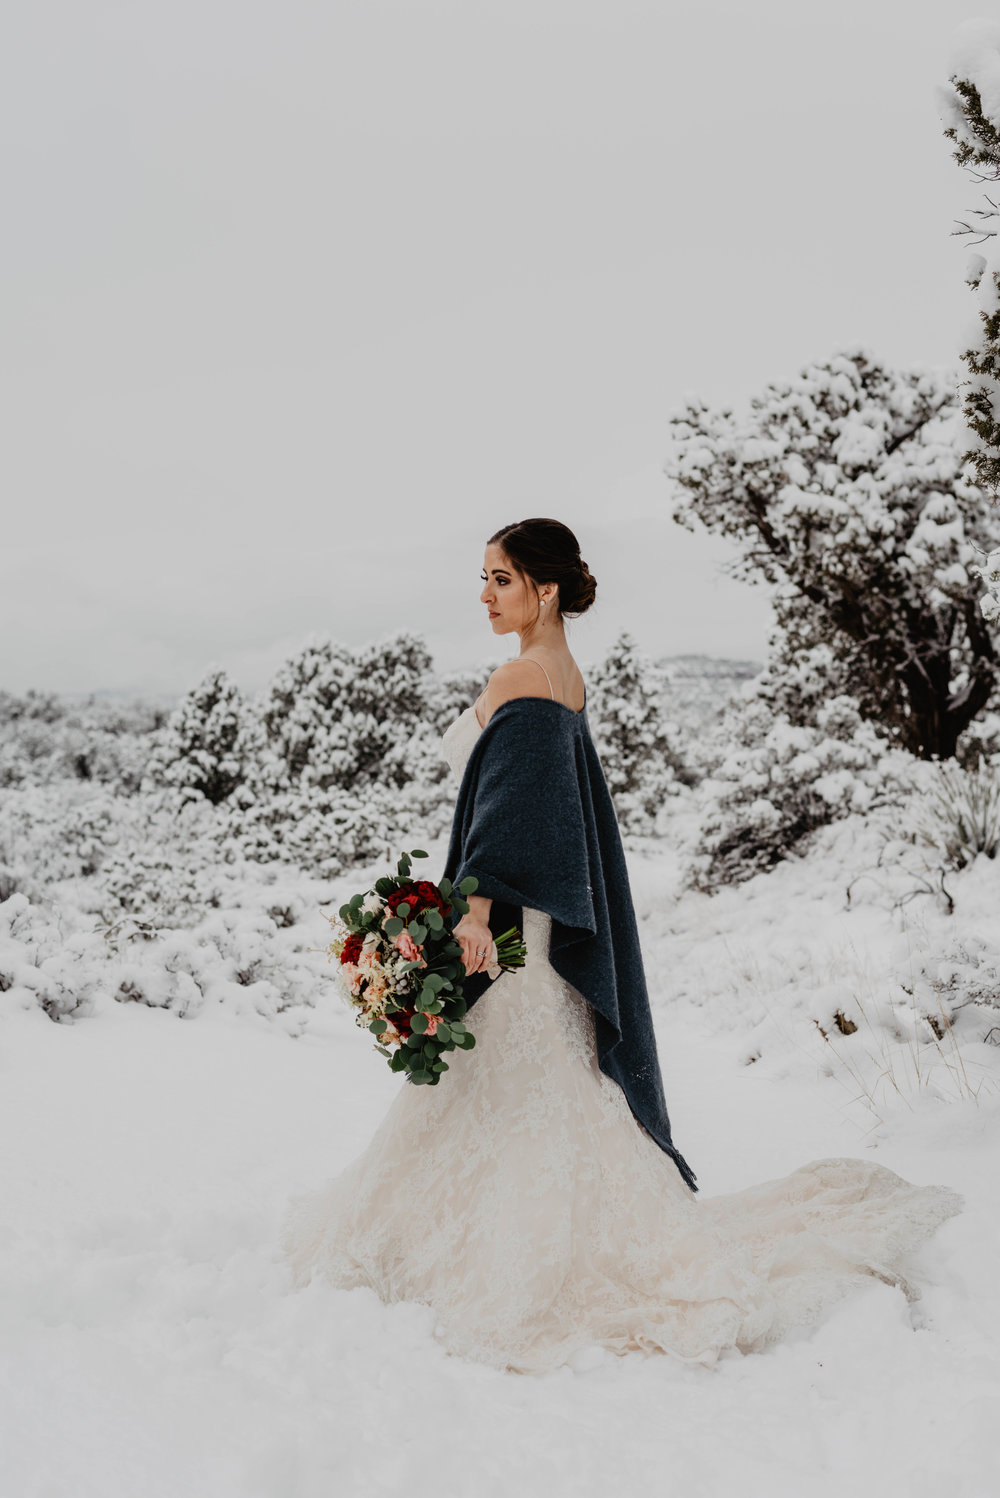 The Dress… - Amber wasn't able to wear her dress due some from damage from her own wedding. This is a pretty normal situation for anniversary shoots! She opted to use one of my wedding dress rentals!@azweddingrental